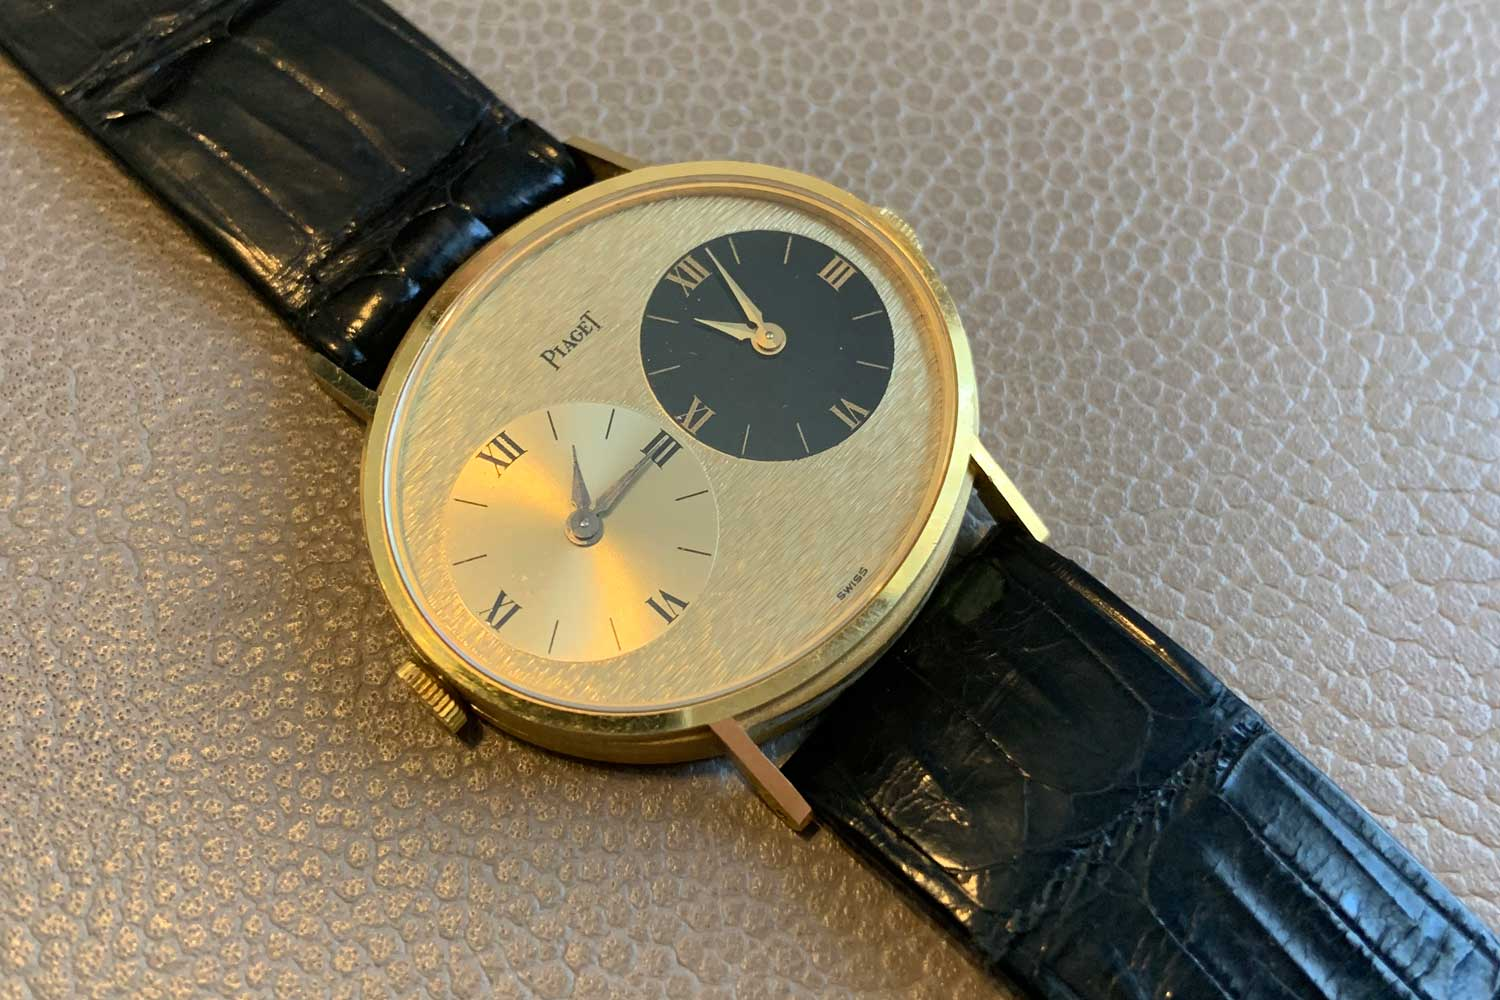 Lot 68: Piaget, Ref. 612501 yellow gold oval-shaped dual-time wristwatch, circa 1973